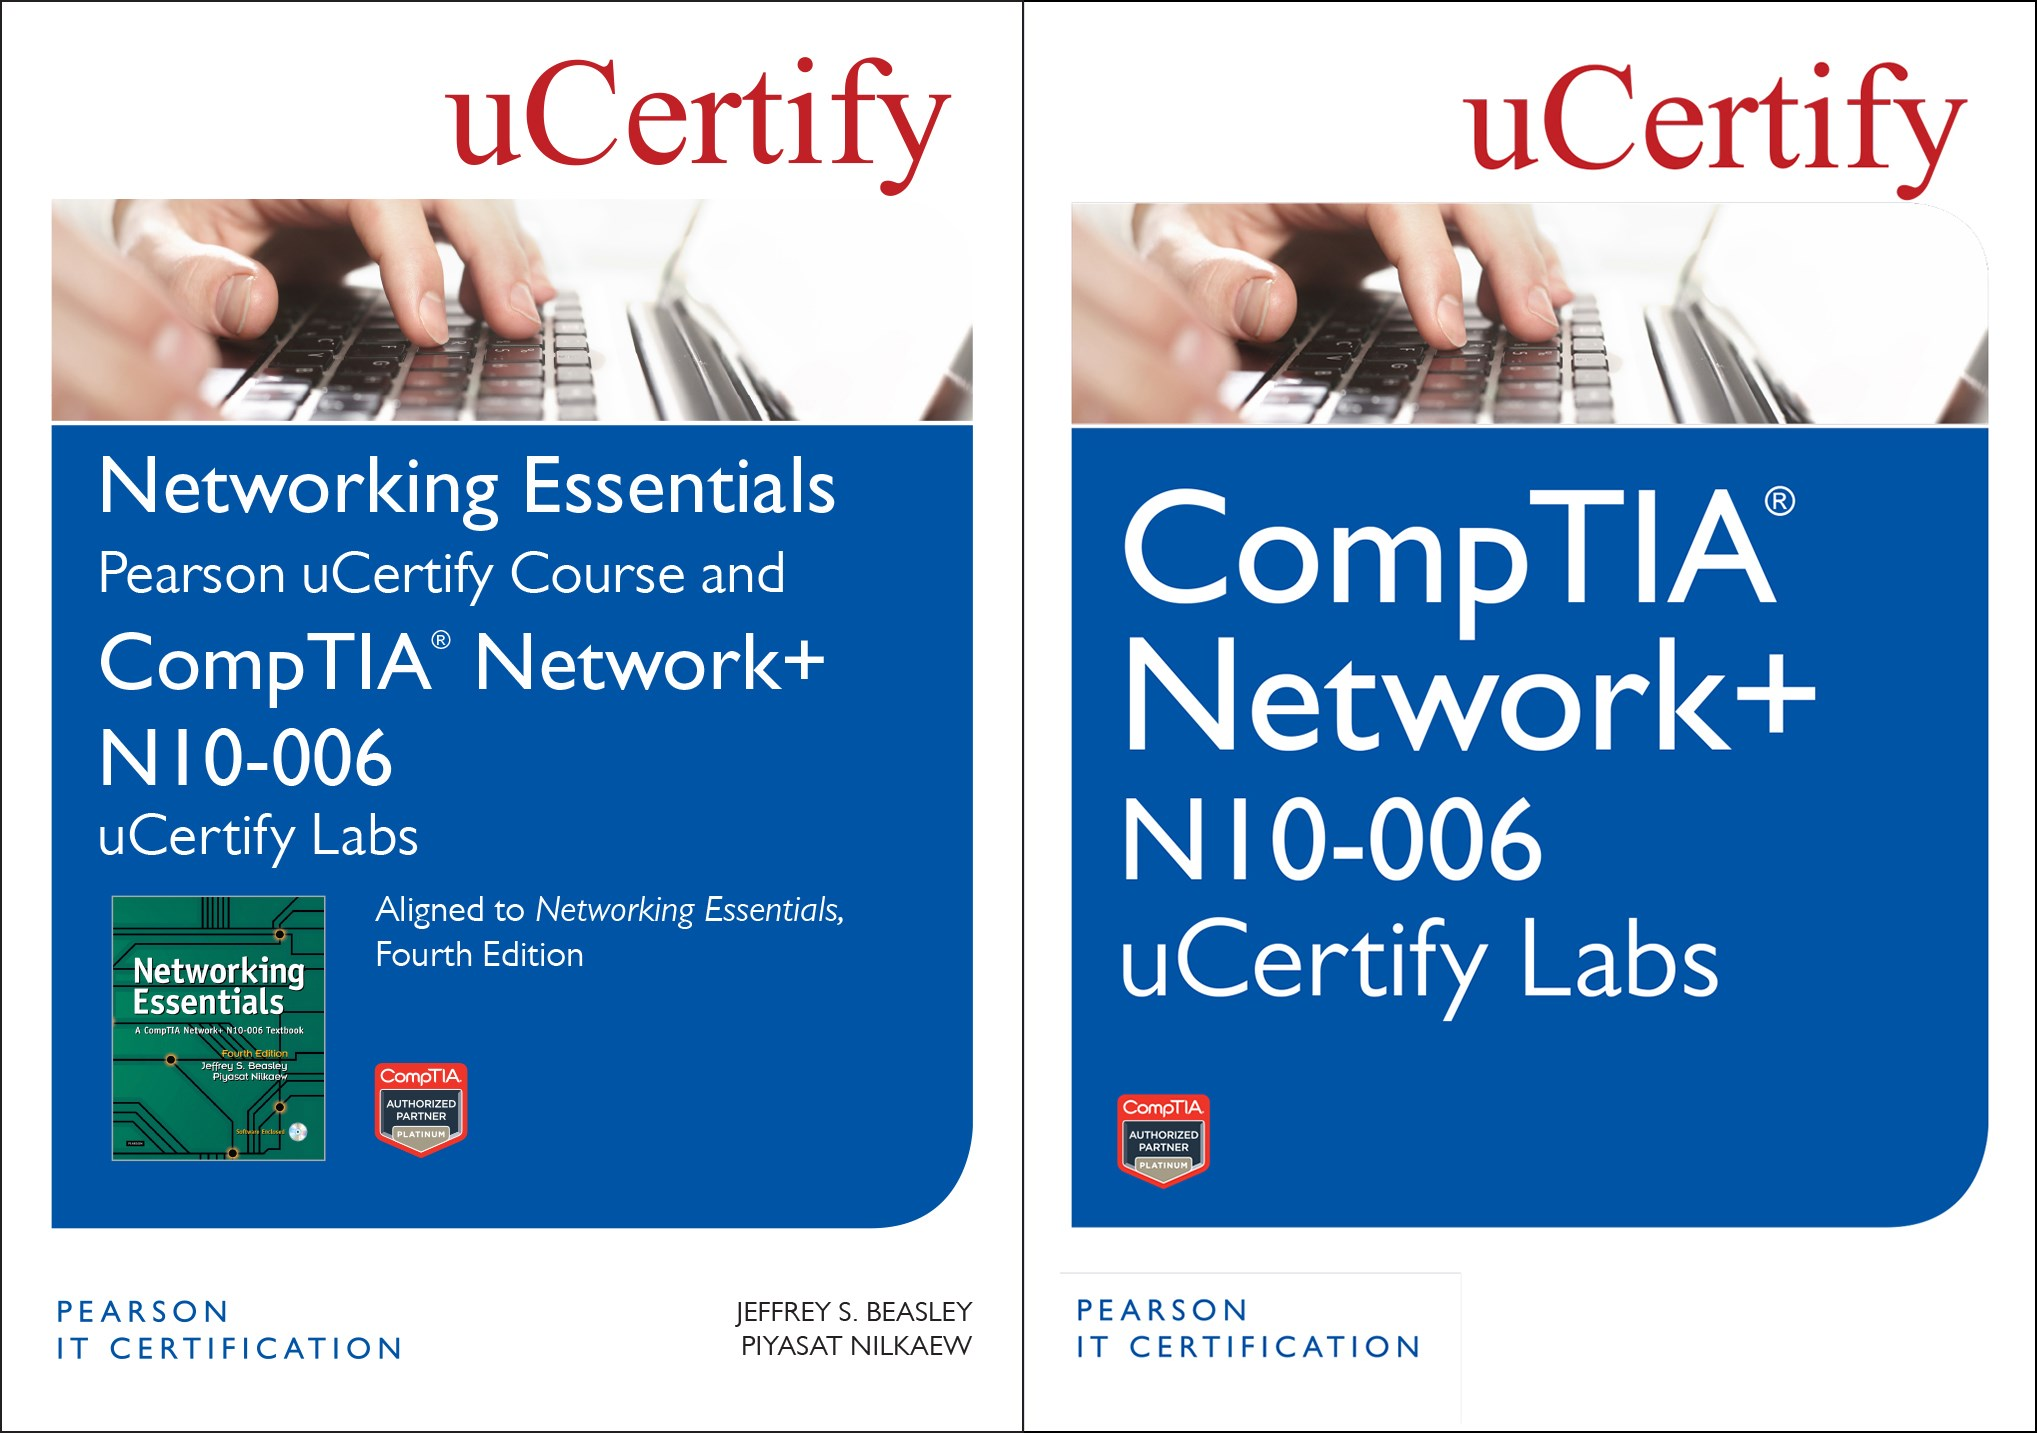 Networking Essentials, Fourth Edition Textbook and Pearson uCertify Course and CompTIA Net+ N10-006 uCertify Labs